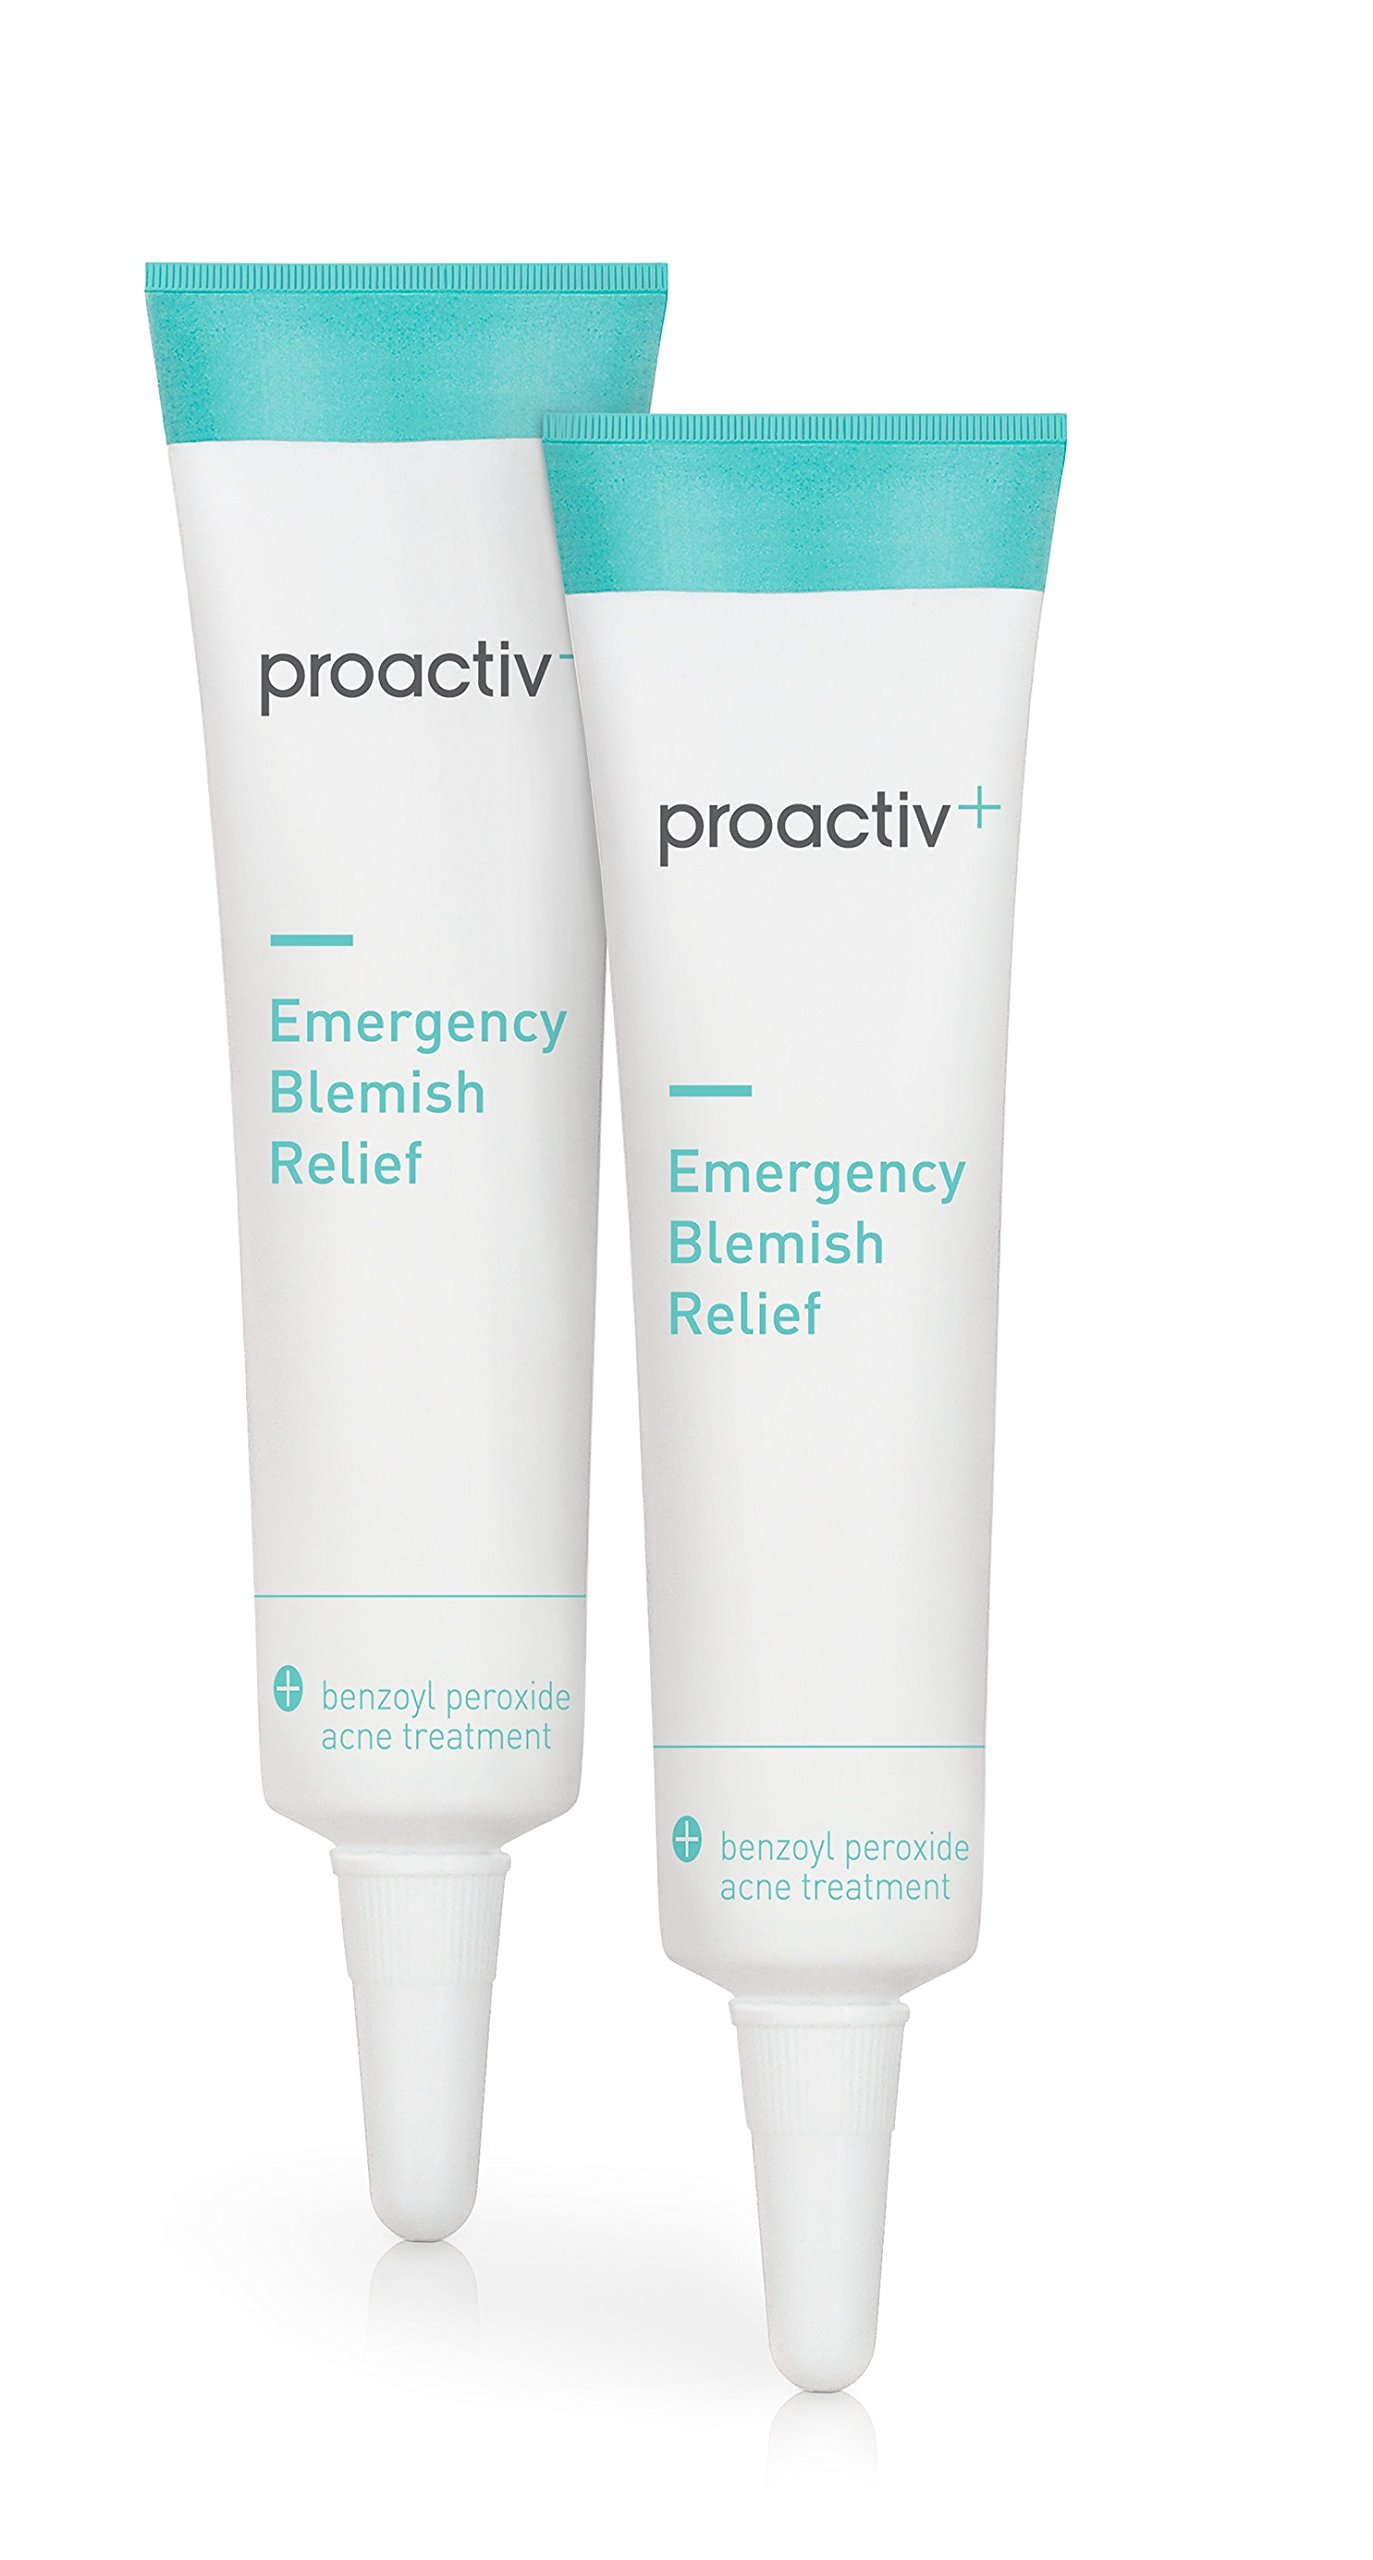 Try proactiv for free